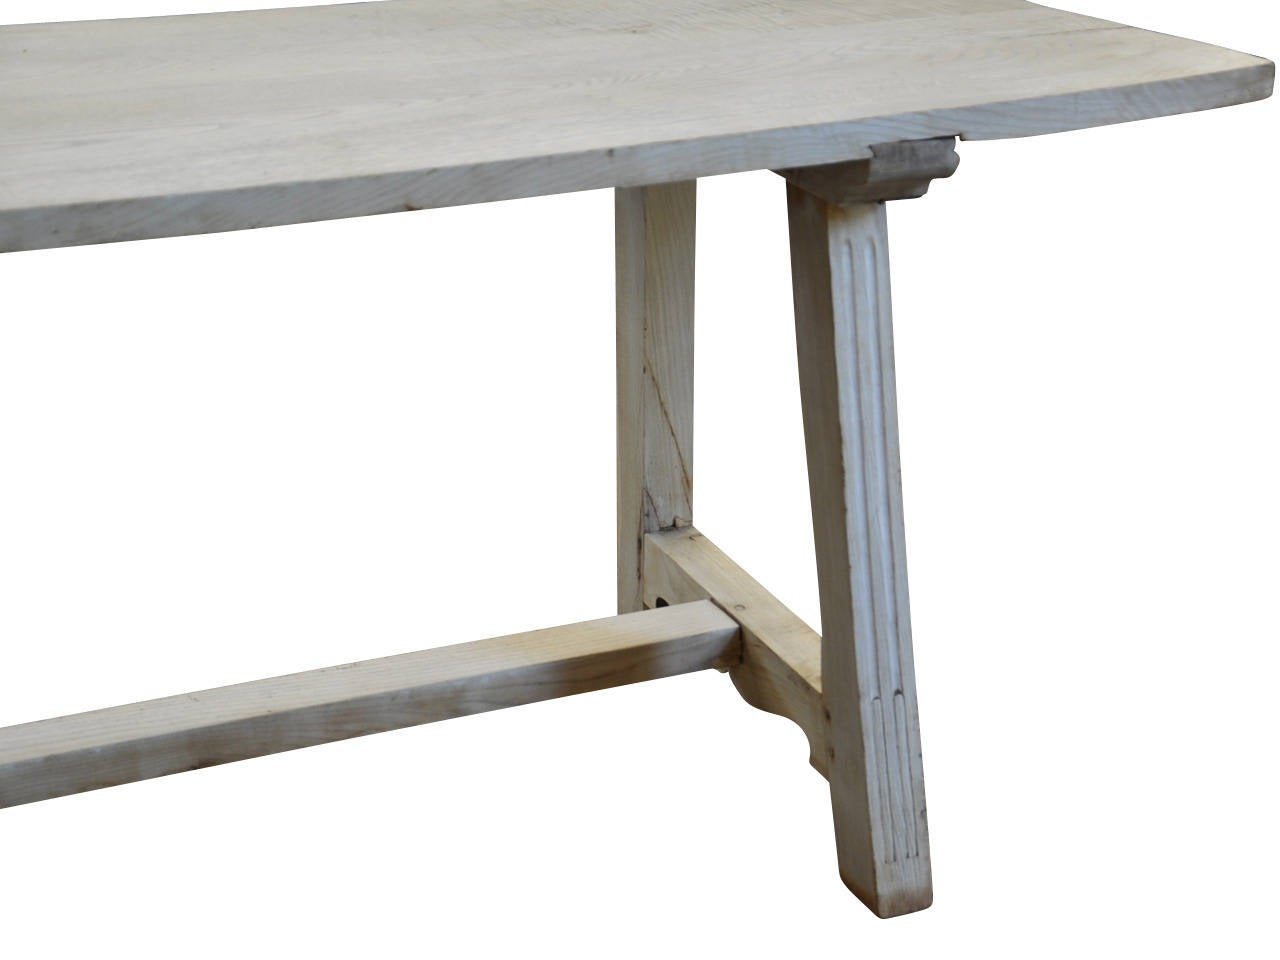 Early 19th Century Italian Farm or Trestle Table in Bleached Chestnut For Sale 2